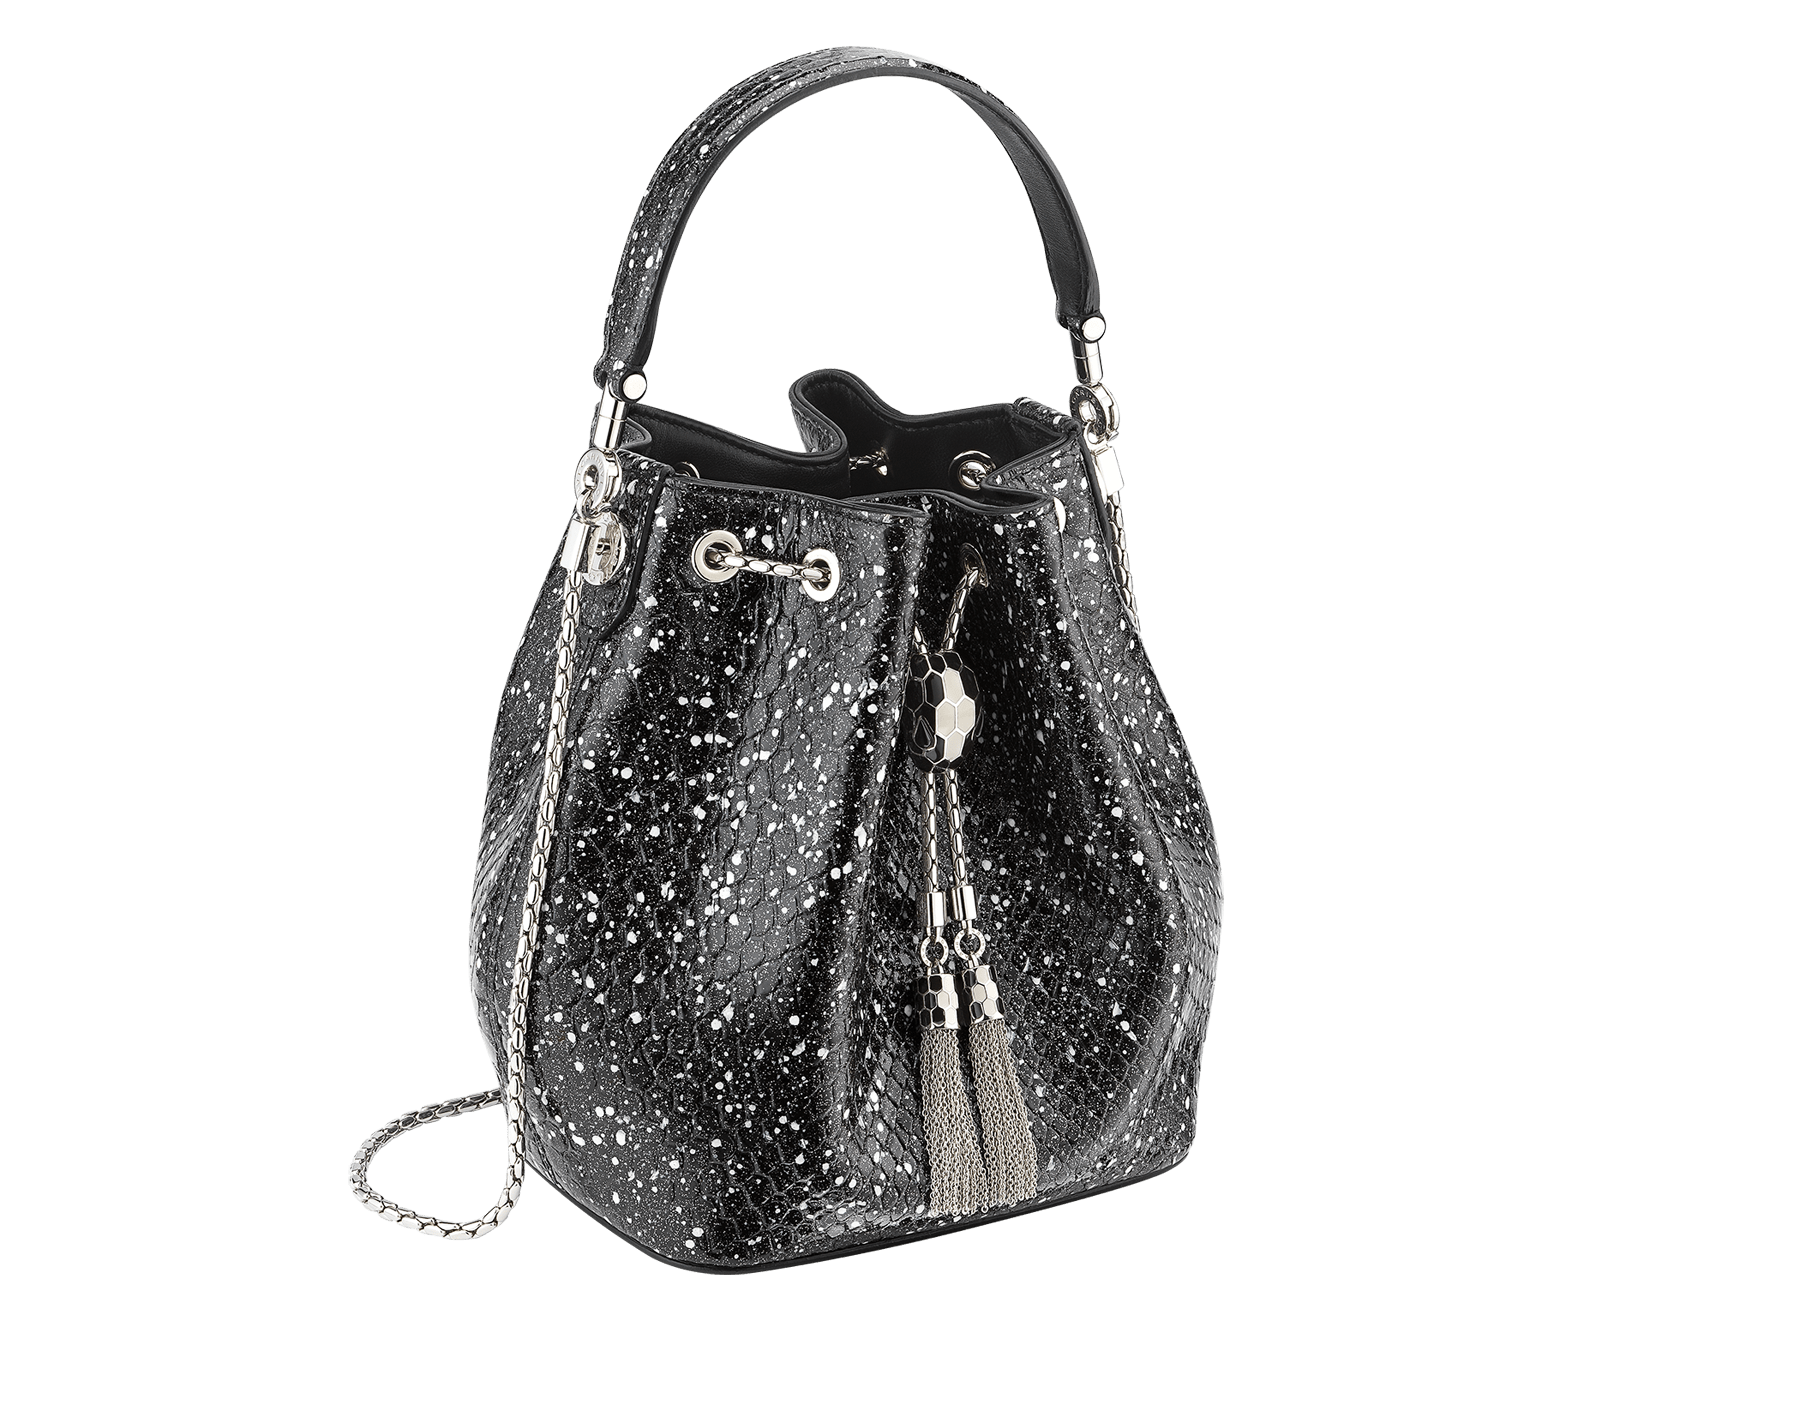 Serpenti Forever bucket bag in black and white Cosmic python skin and black nappa inner lining. Snakehead closure in palladium plated brass decorated with black and white enamel, and black onyx eyes. 288112 image 2